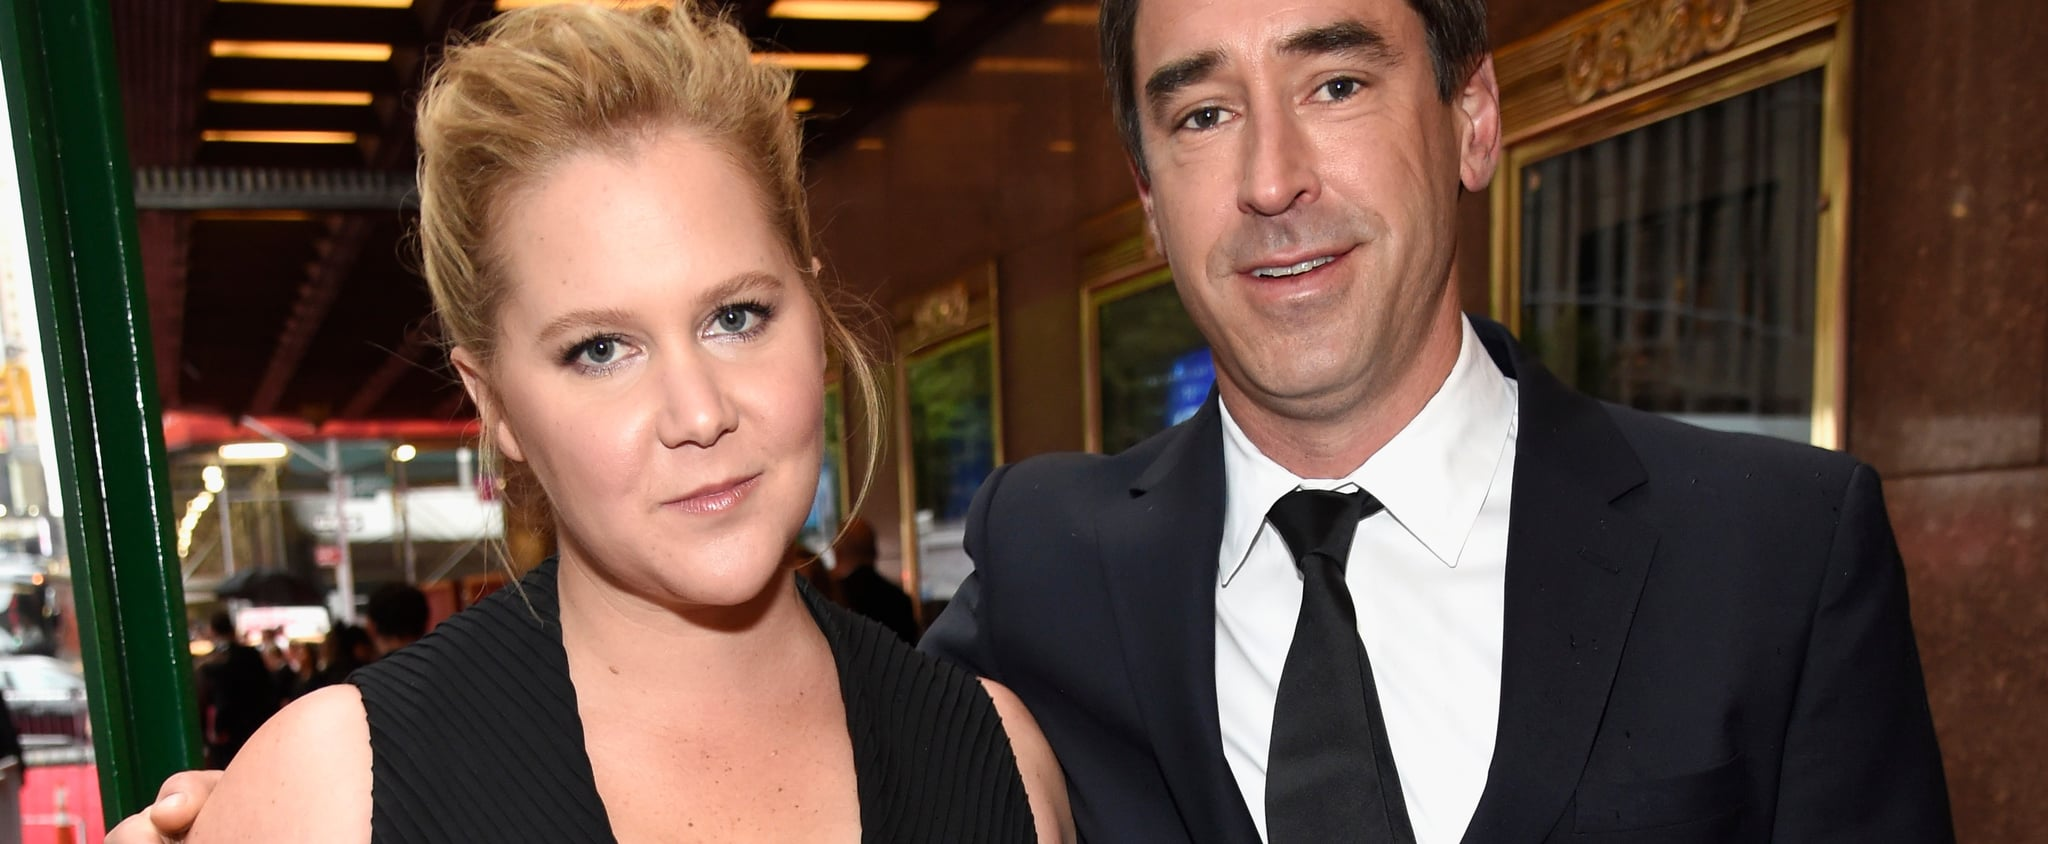 Amy Schumer Pregnant With First Child